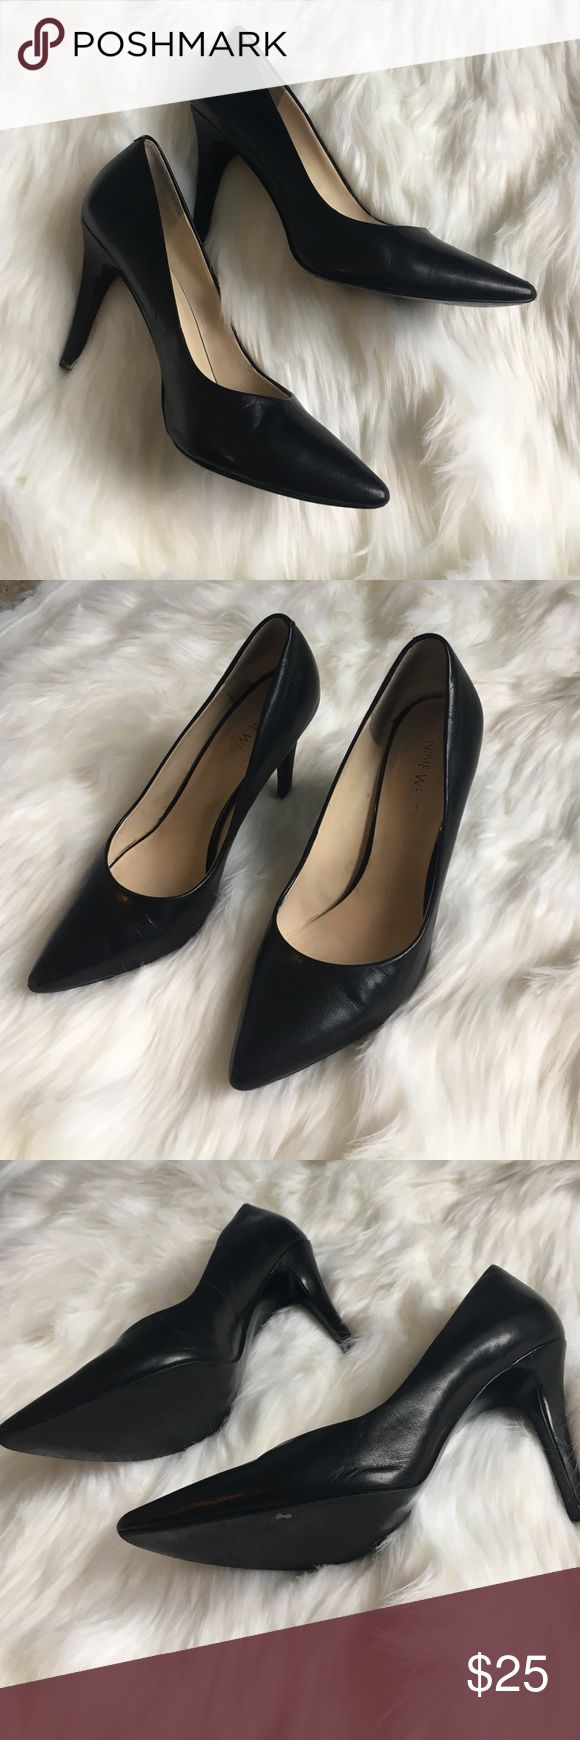 Nine West Heels ⚡ Fast Shipper.   Bundle Discounts.  No damages.    No Pets.   No Smoking.  ⚠️ No offers will be considered w/o the offer feature. Nine West Shoes Heels